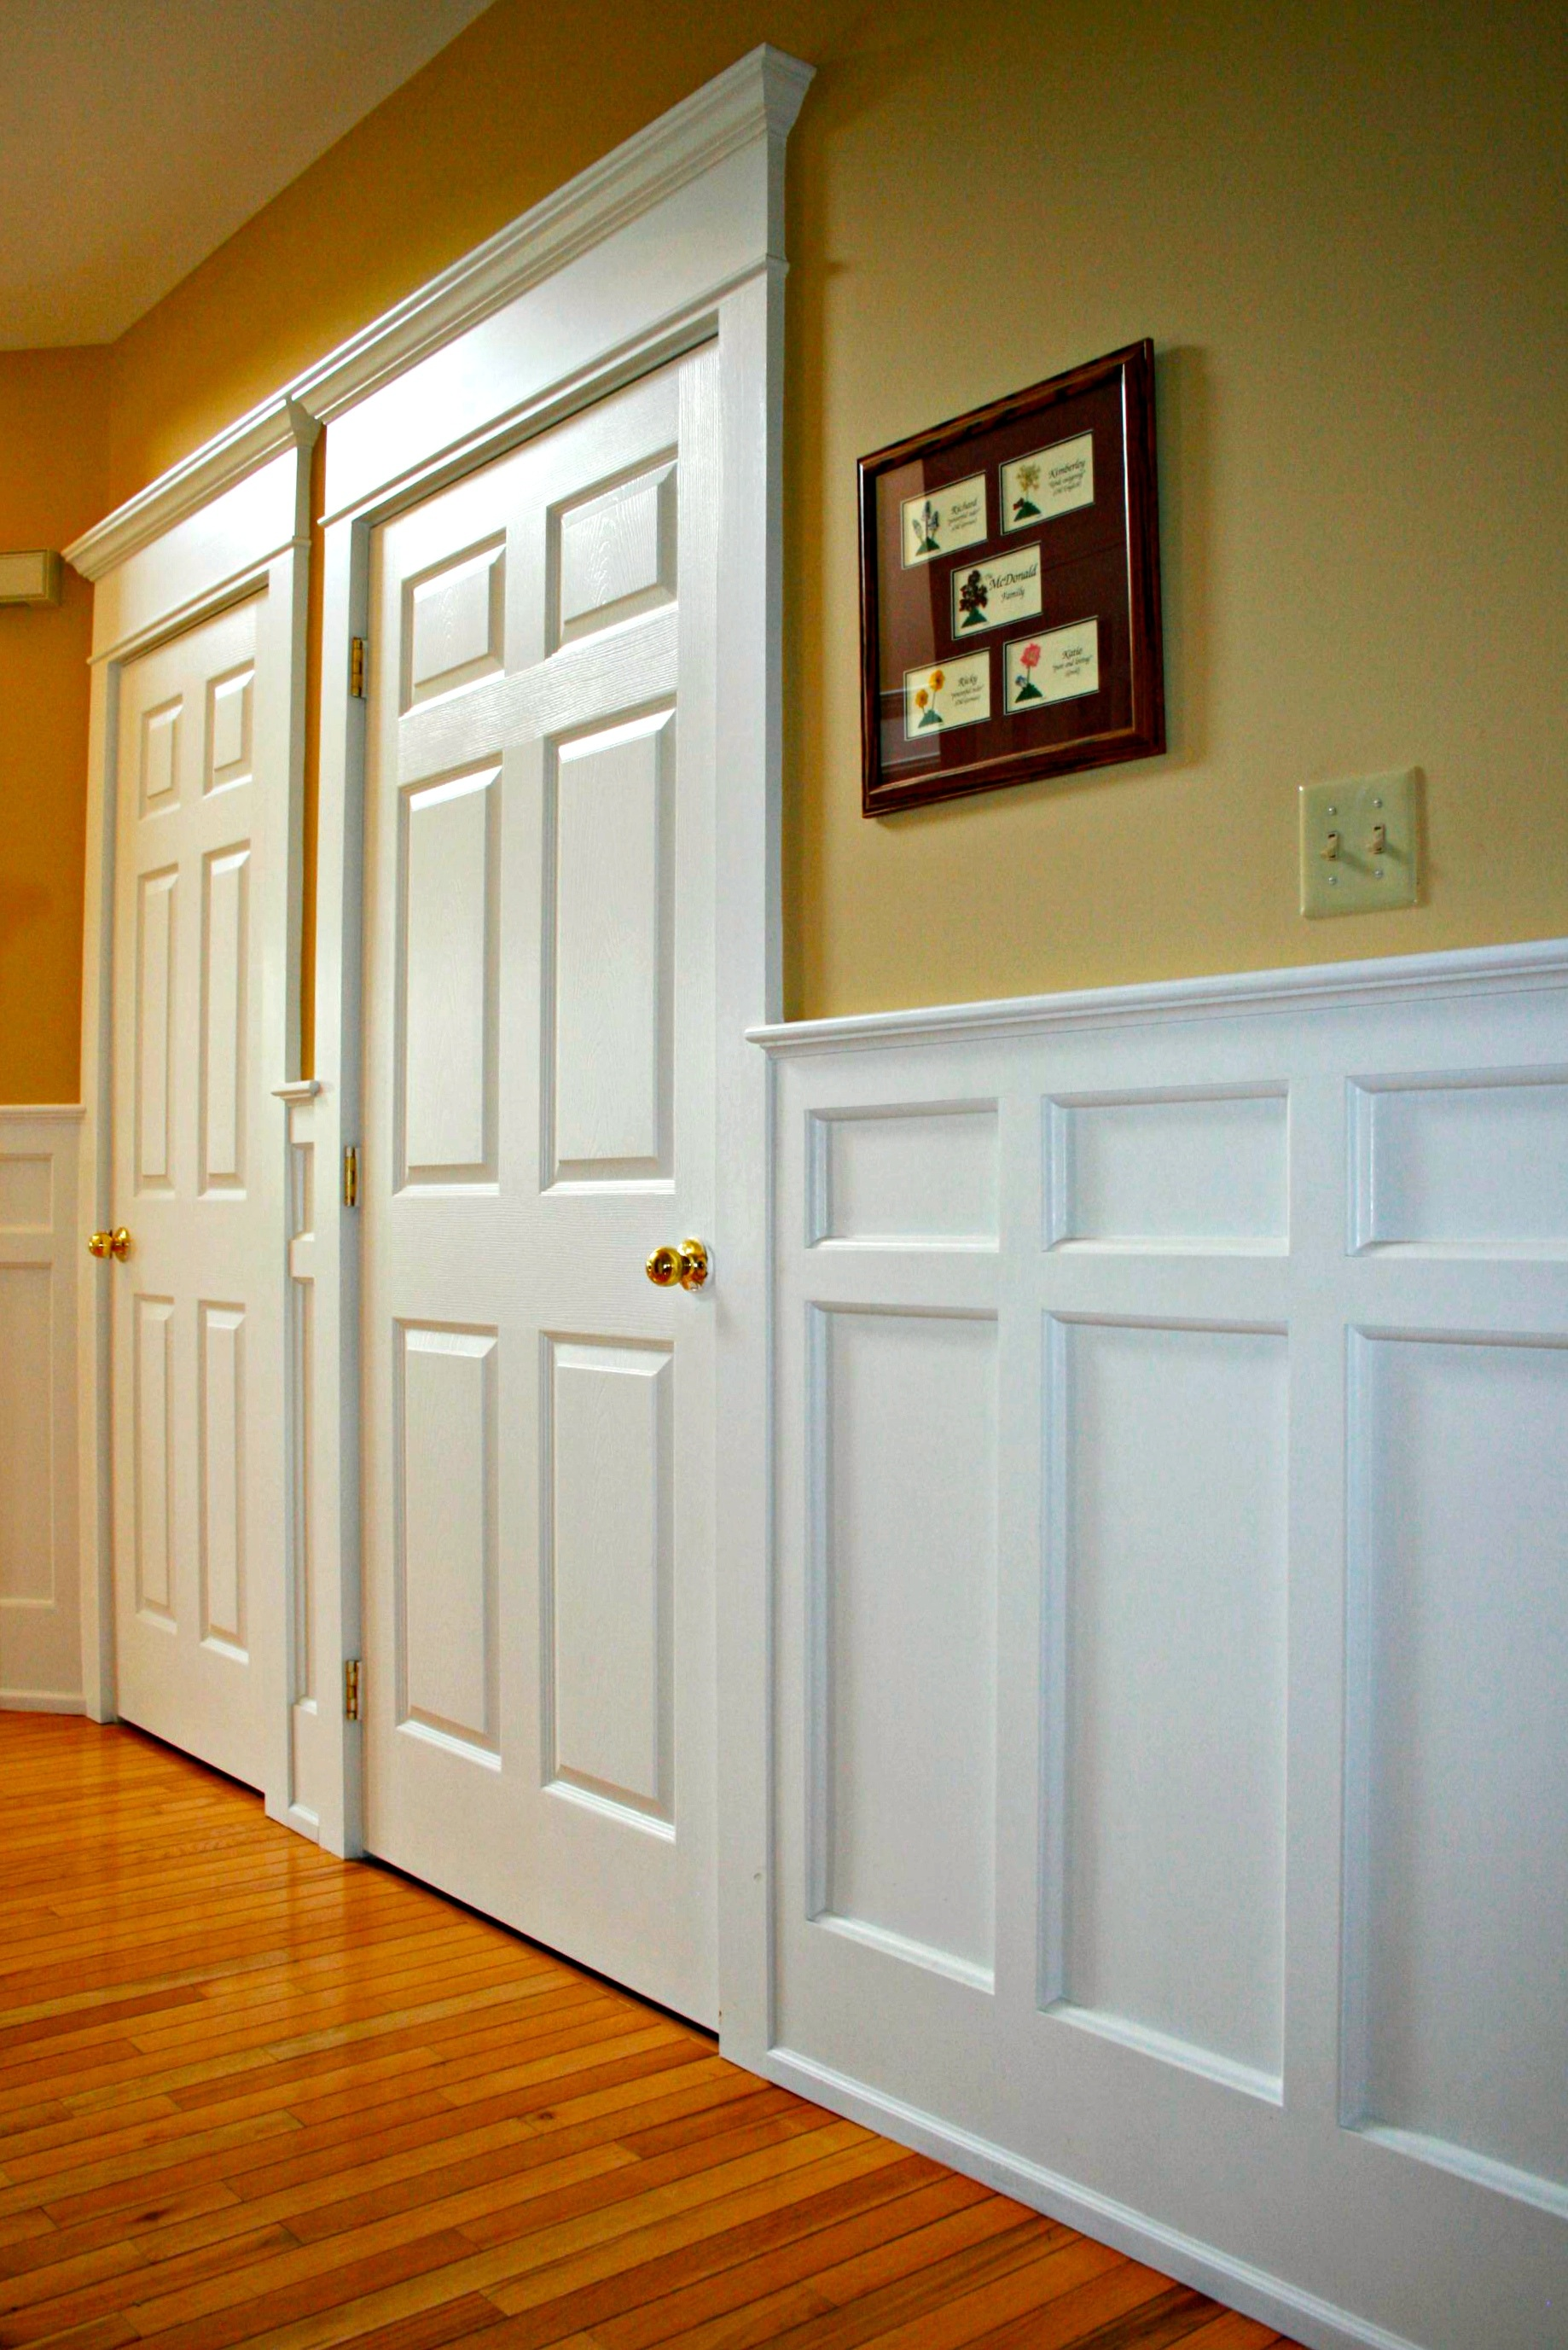 Home Depot Bathroom Design Ideas Wainscoting Installation By Deacon Home Enhancement